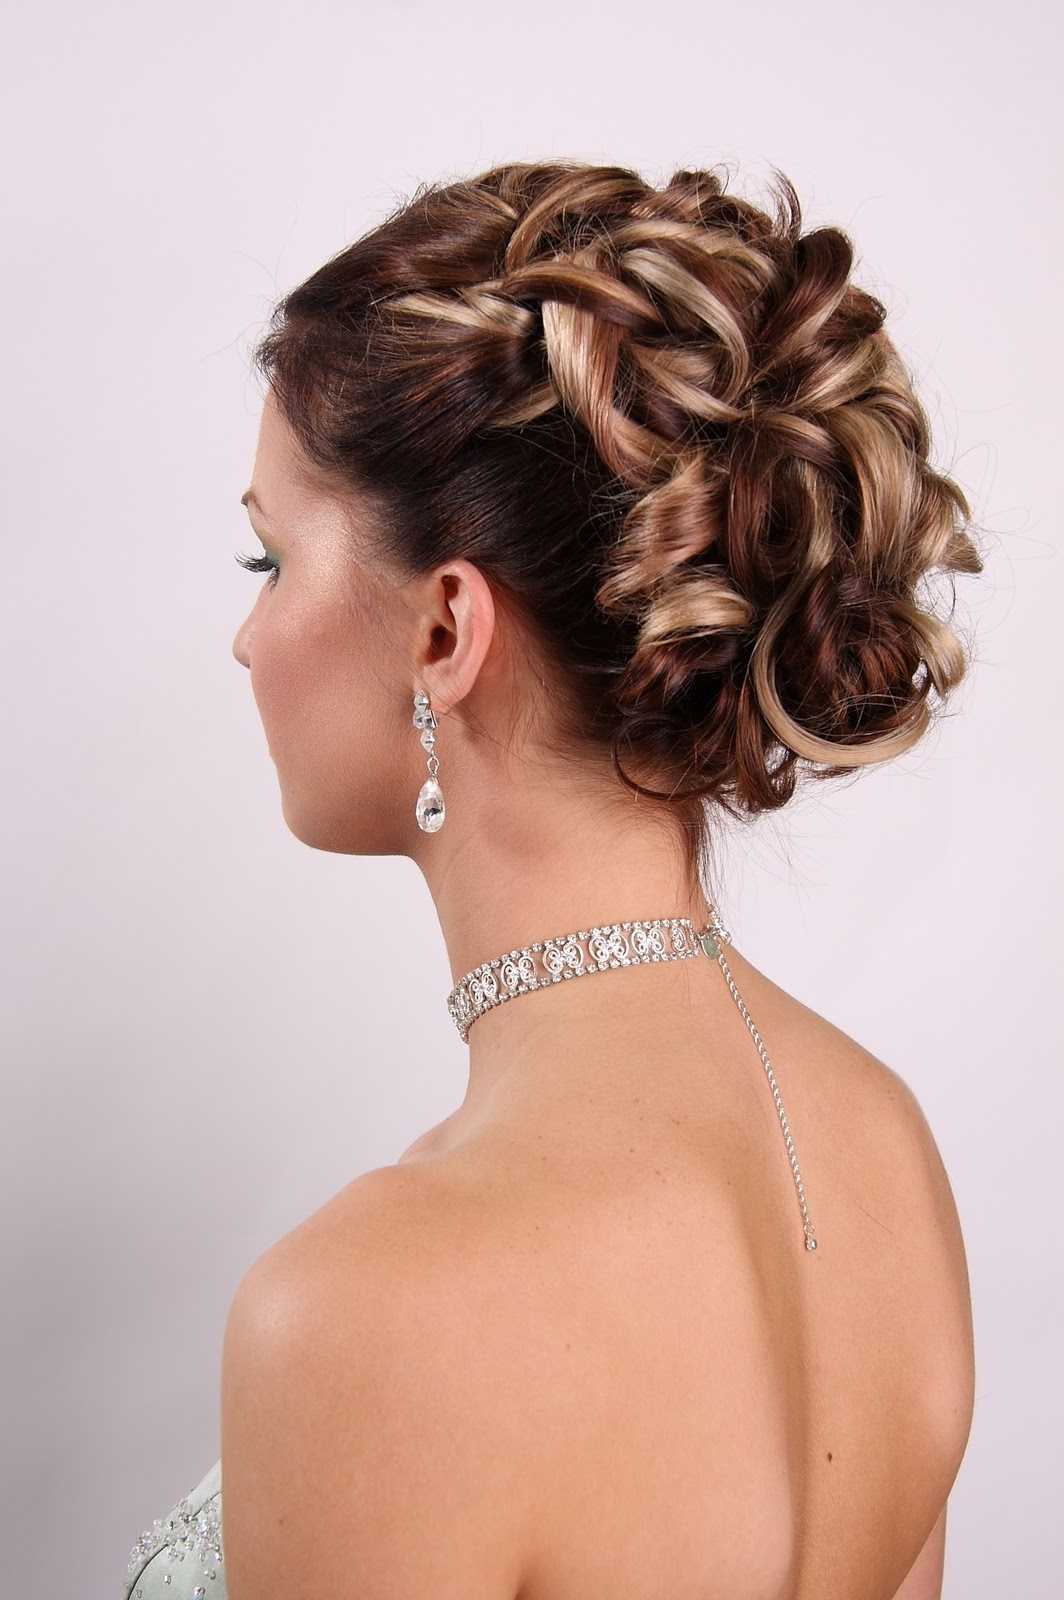 Favorite Wedding Hairstyles For Shoulder Length Black Hair Throughout Bridesmaid Hairstyles Medium Length – Hairstyle For Women & Man (View 8 of 15)